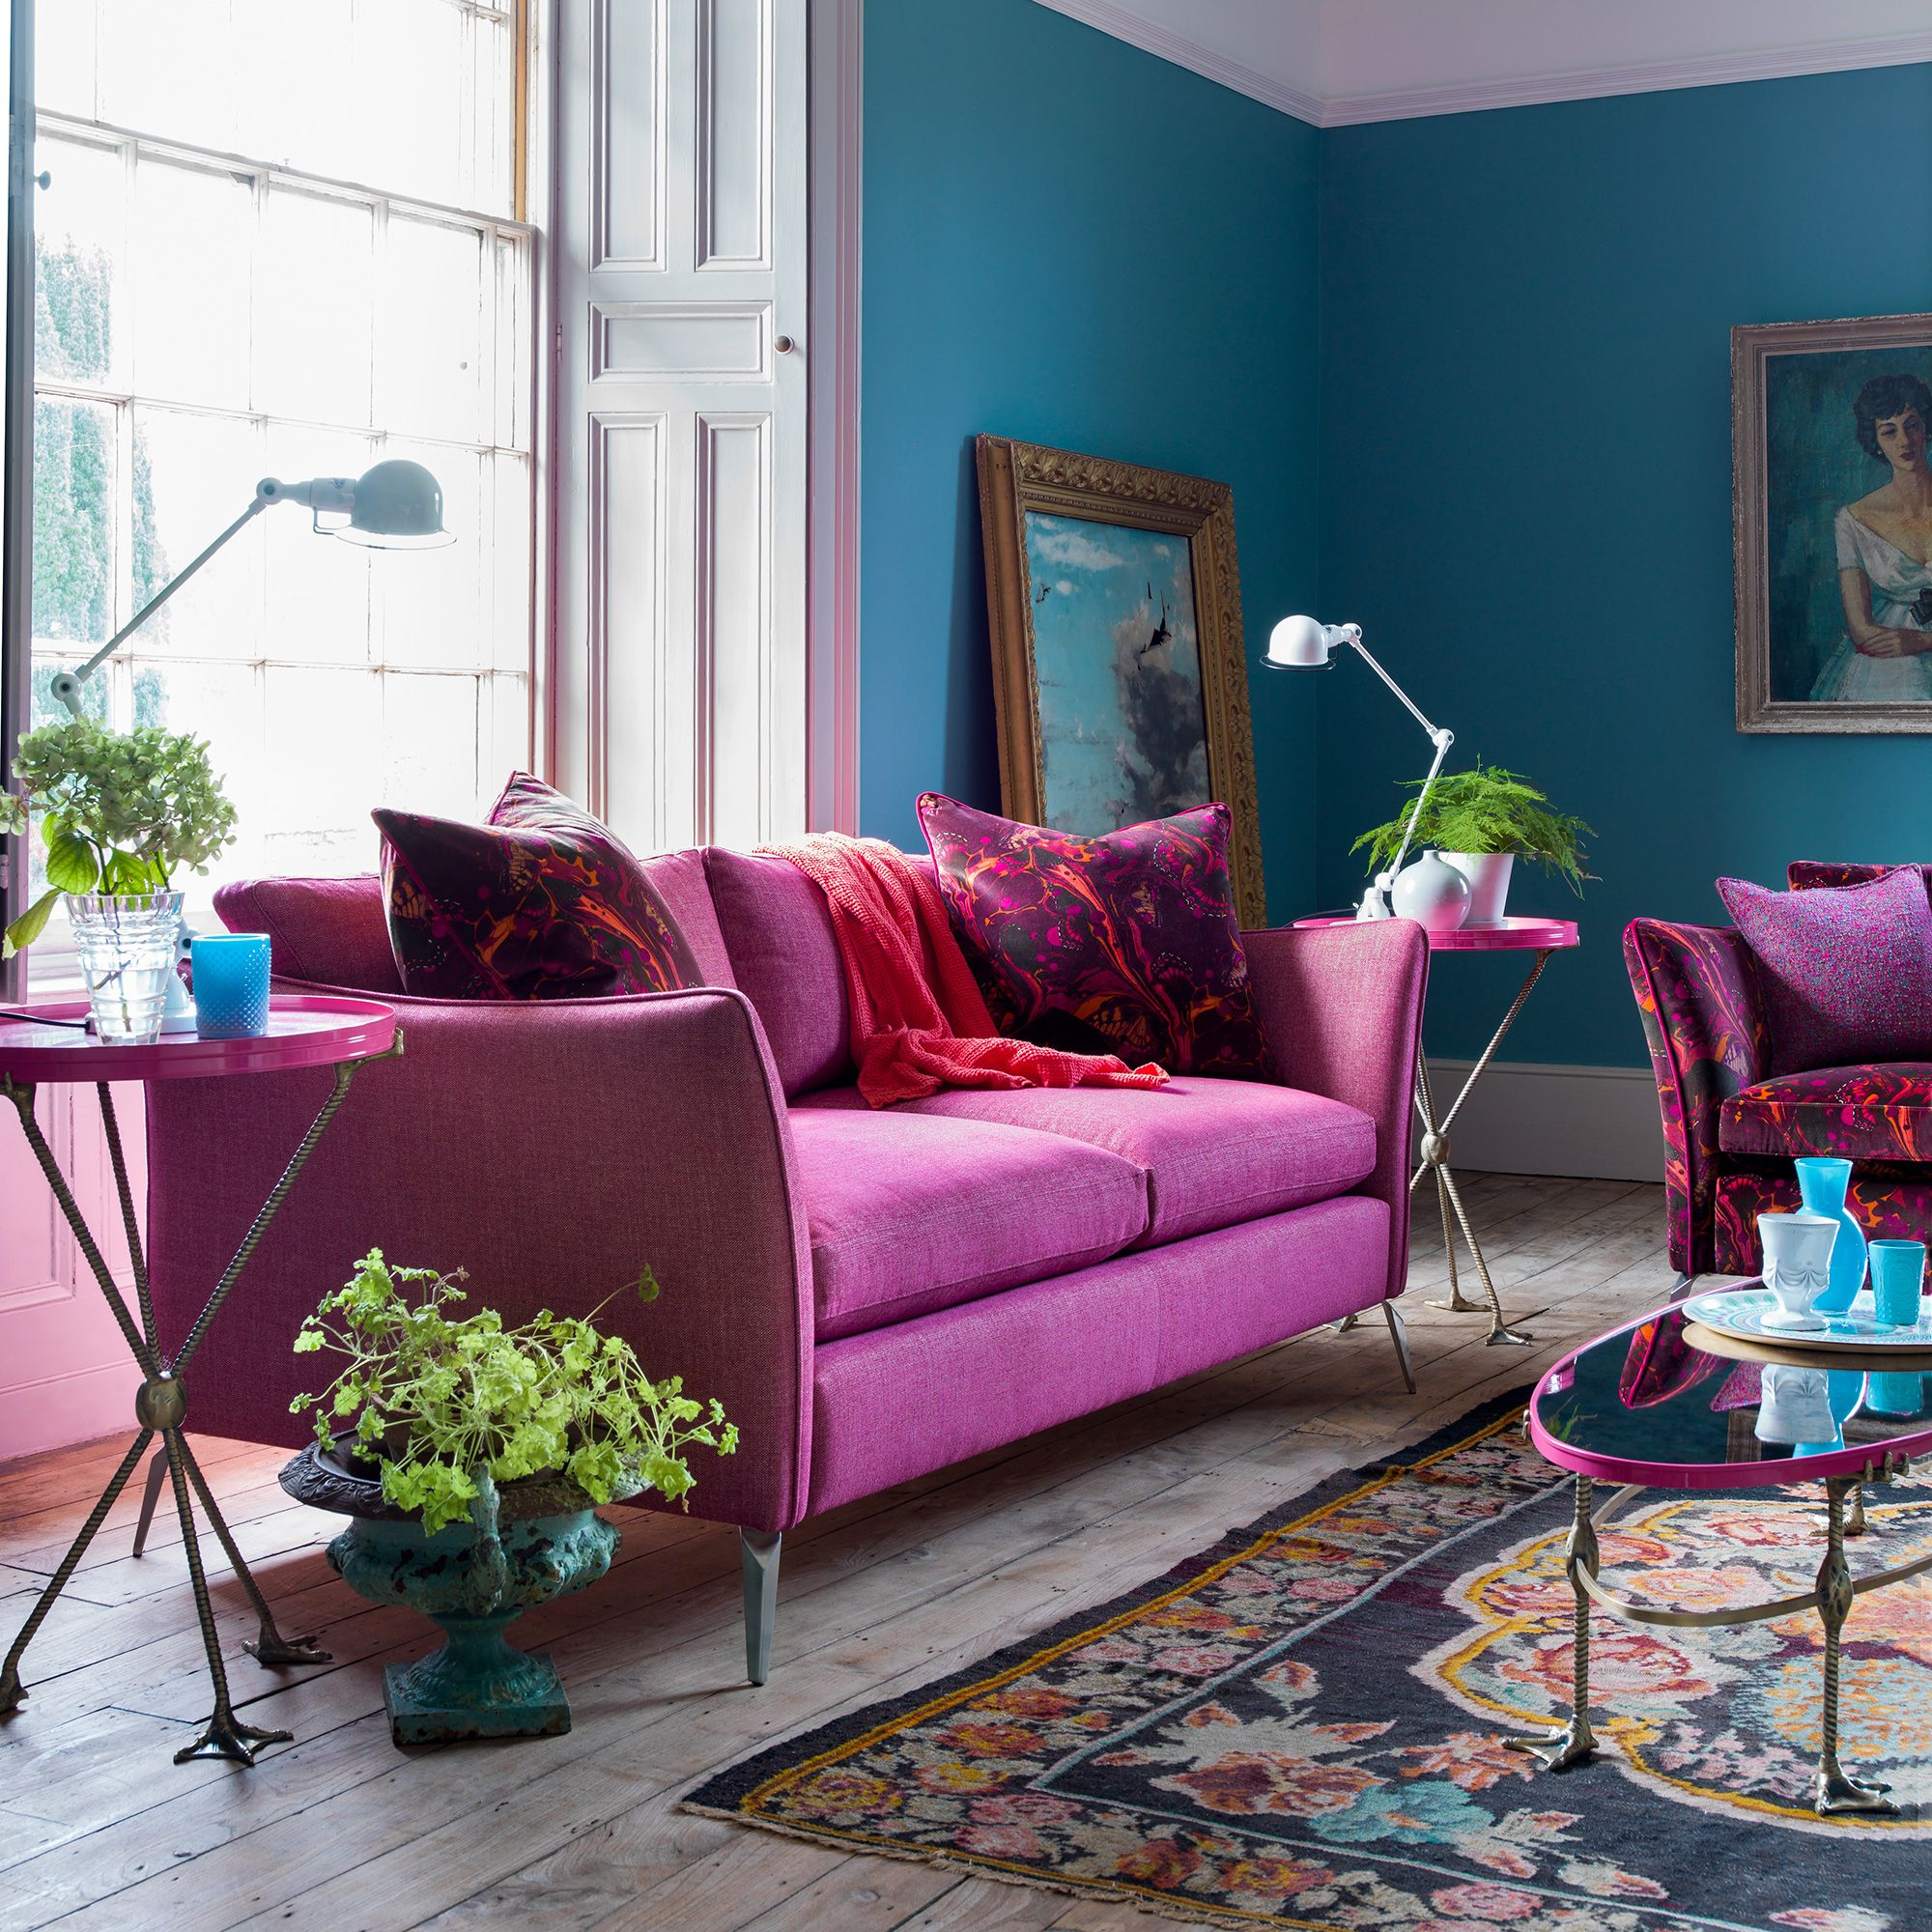 Duresta Have Been Working With Fashion Designer Mathew Williamson To Create  A New Exclusive Collection Of. Large SofaLiving Room SofaLiving  SpacesQuality ...